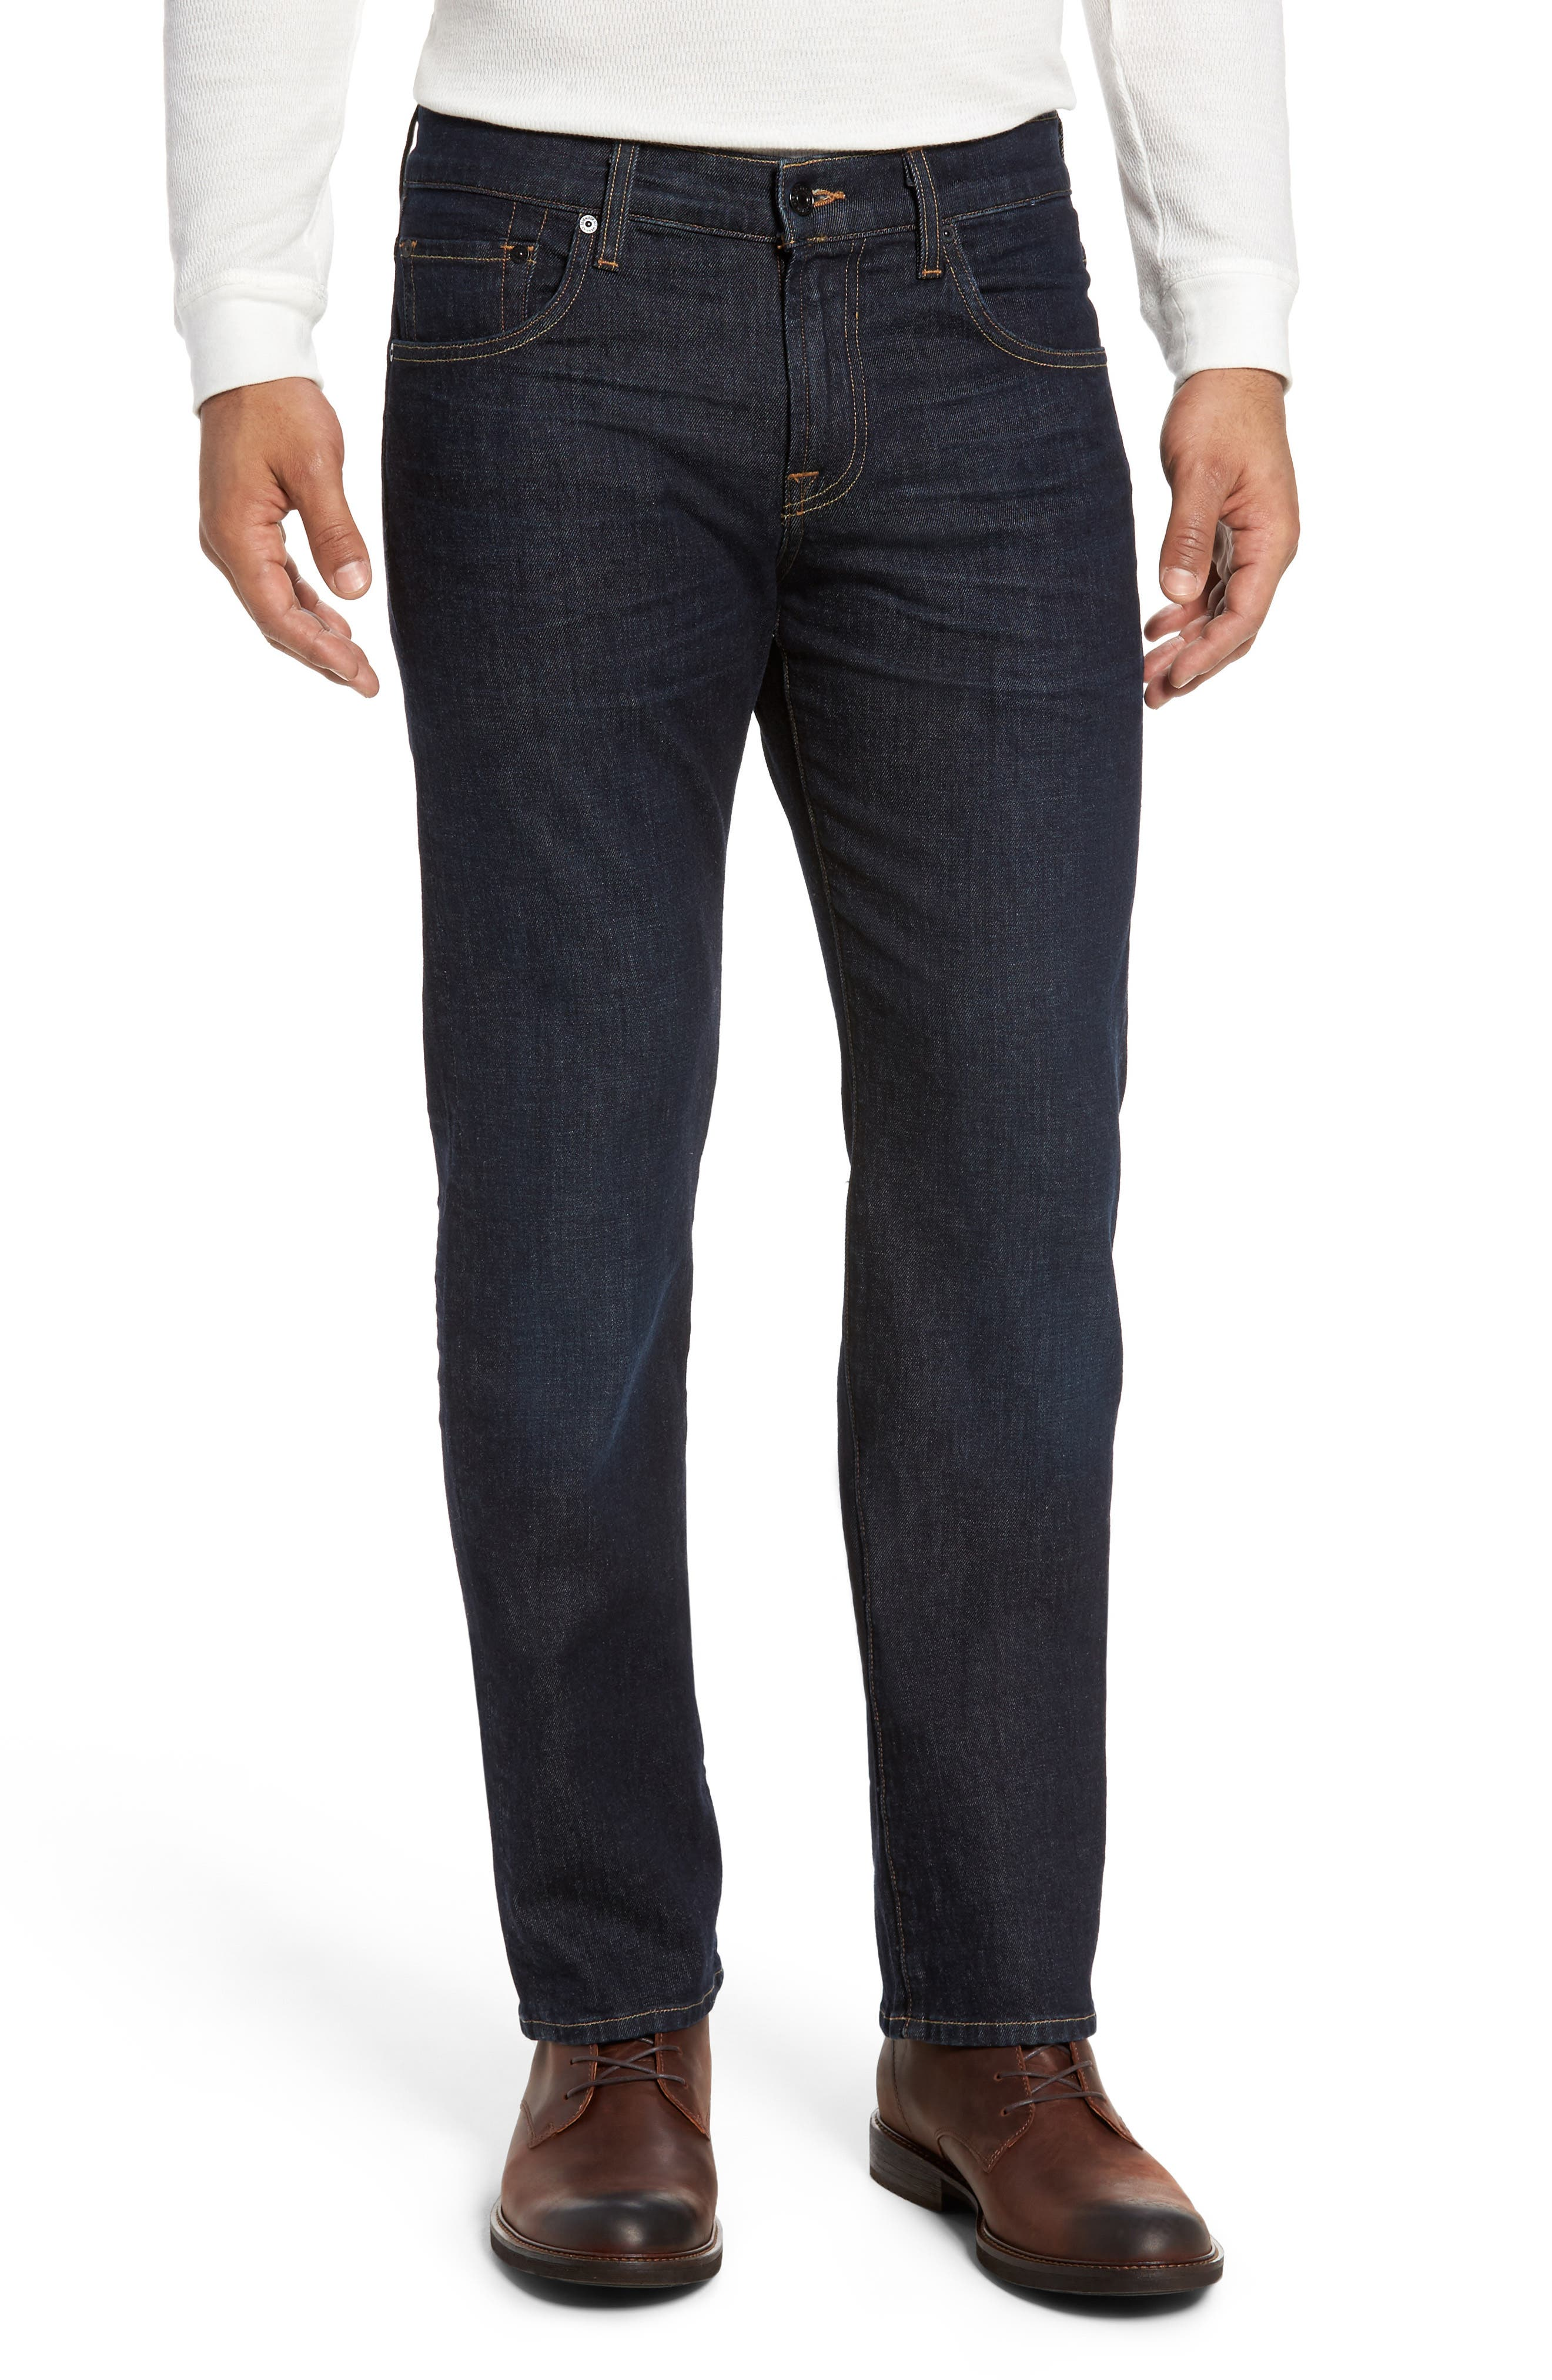 Austyn Relaxed Fit Jeans,                         Main,                         color, Codec